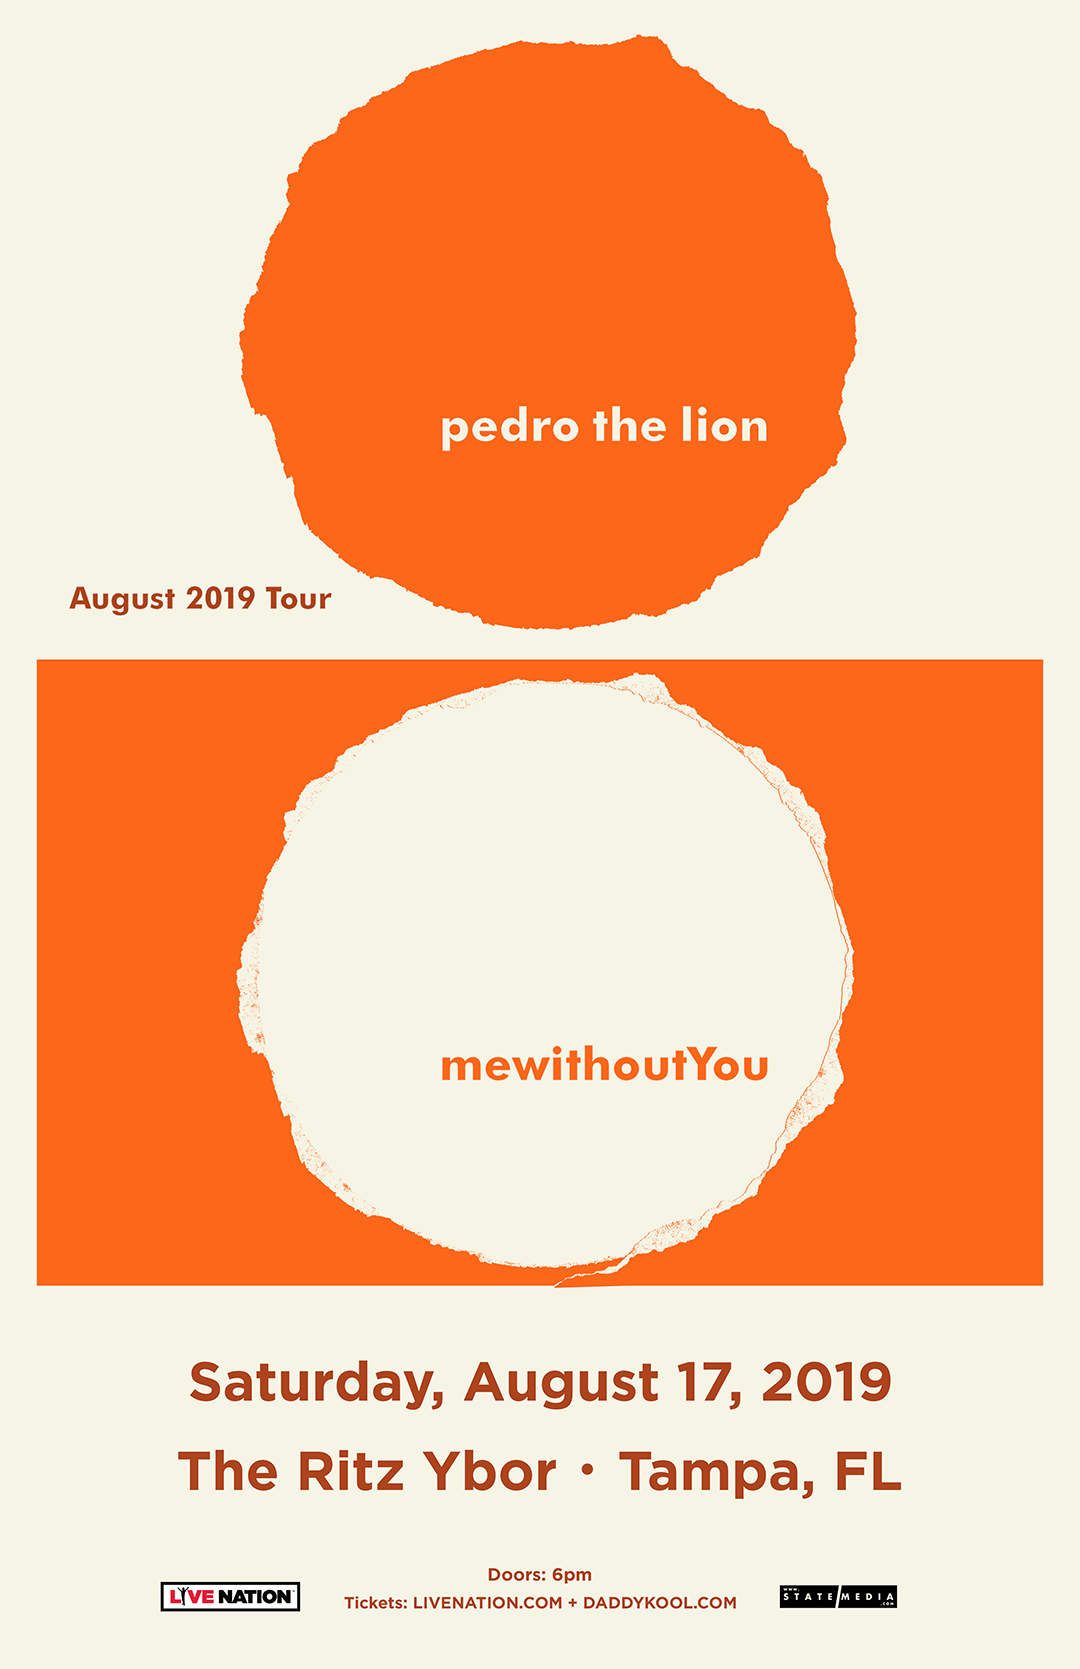 Pedro the Lion | mewithoutYou at The RITZ Ybor – 8/17/2019